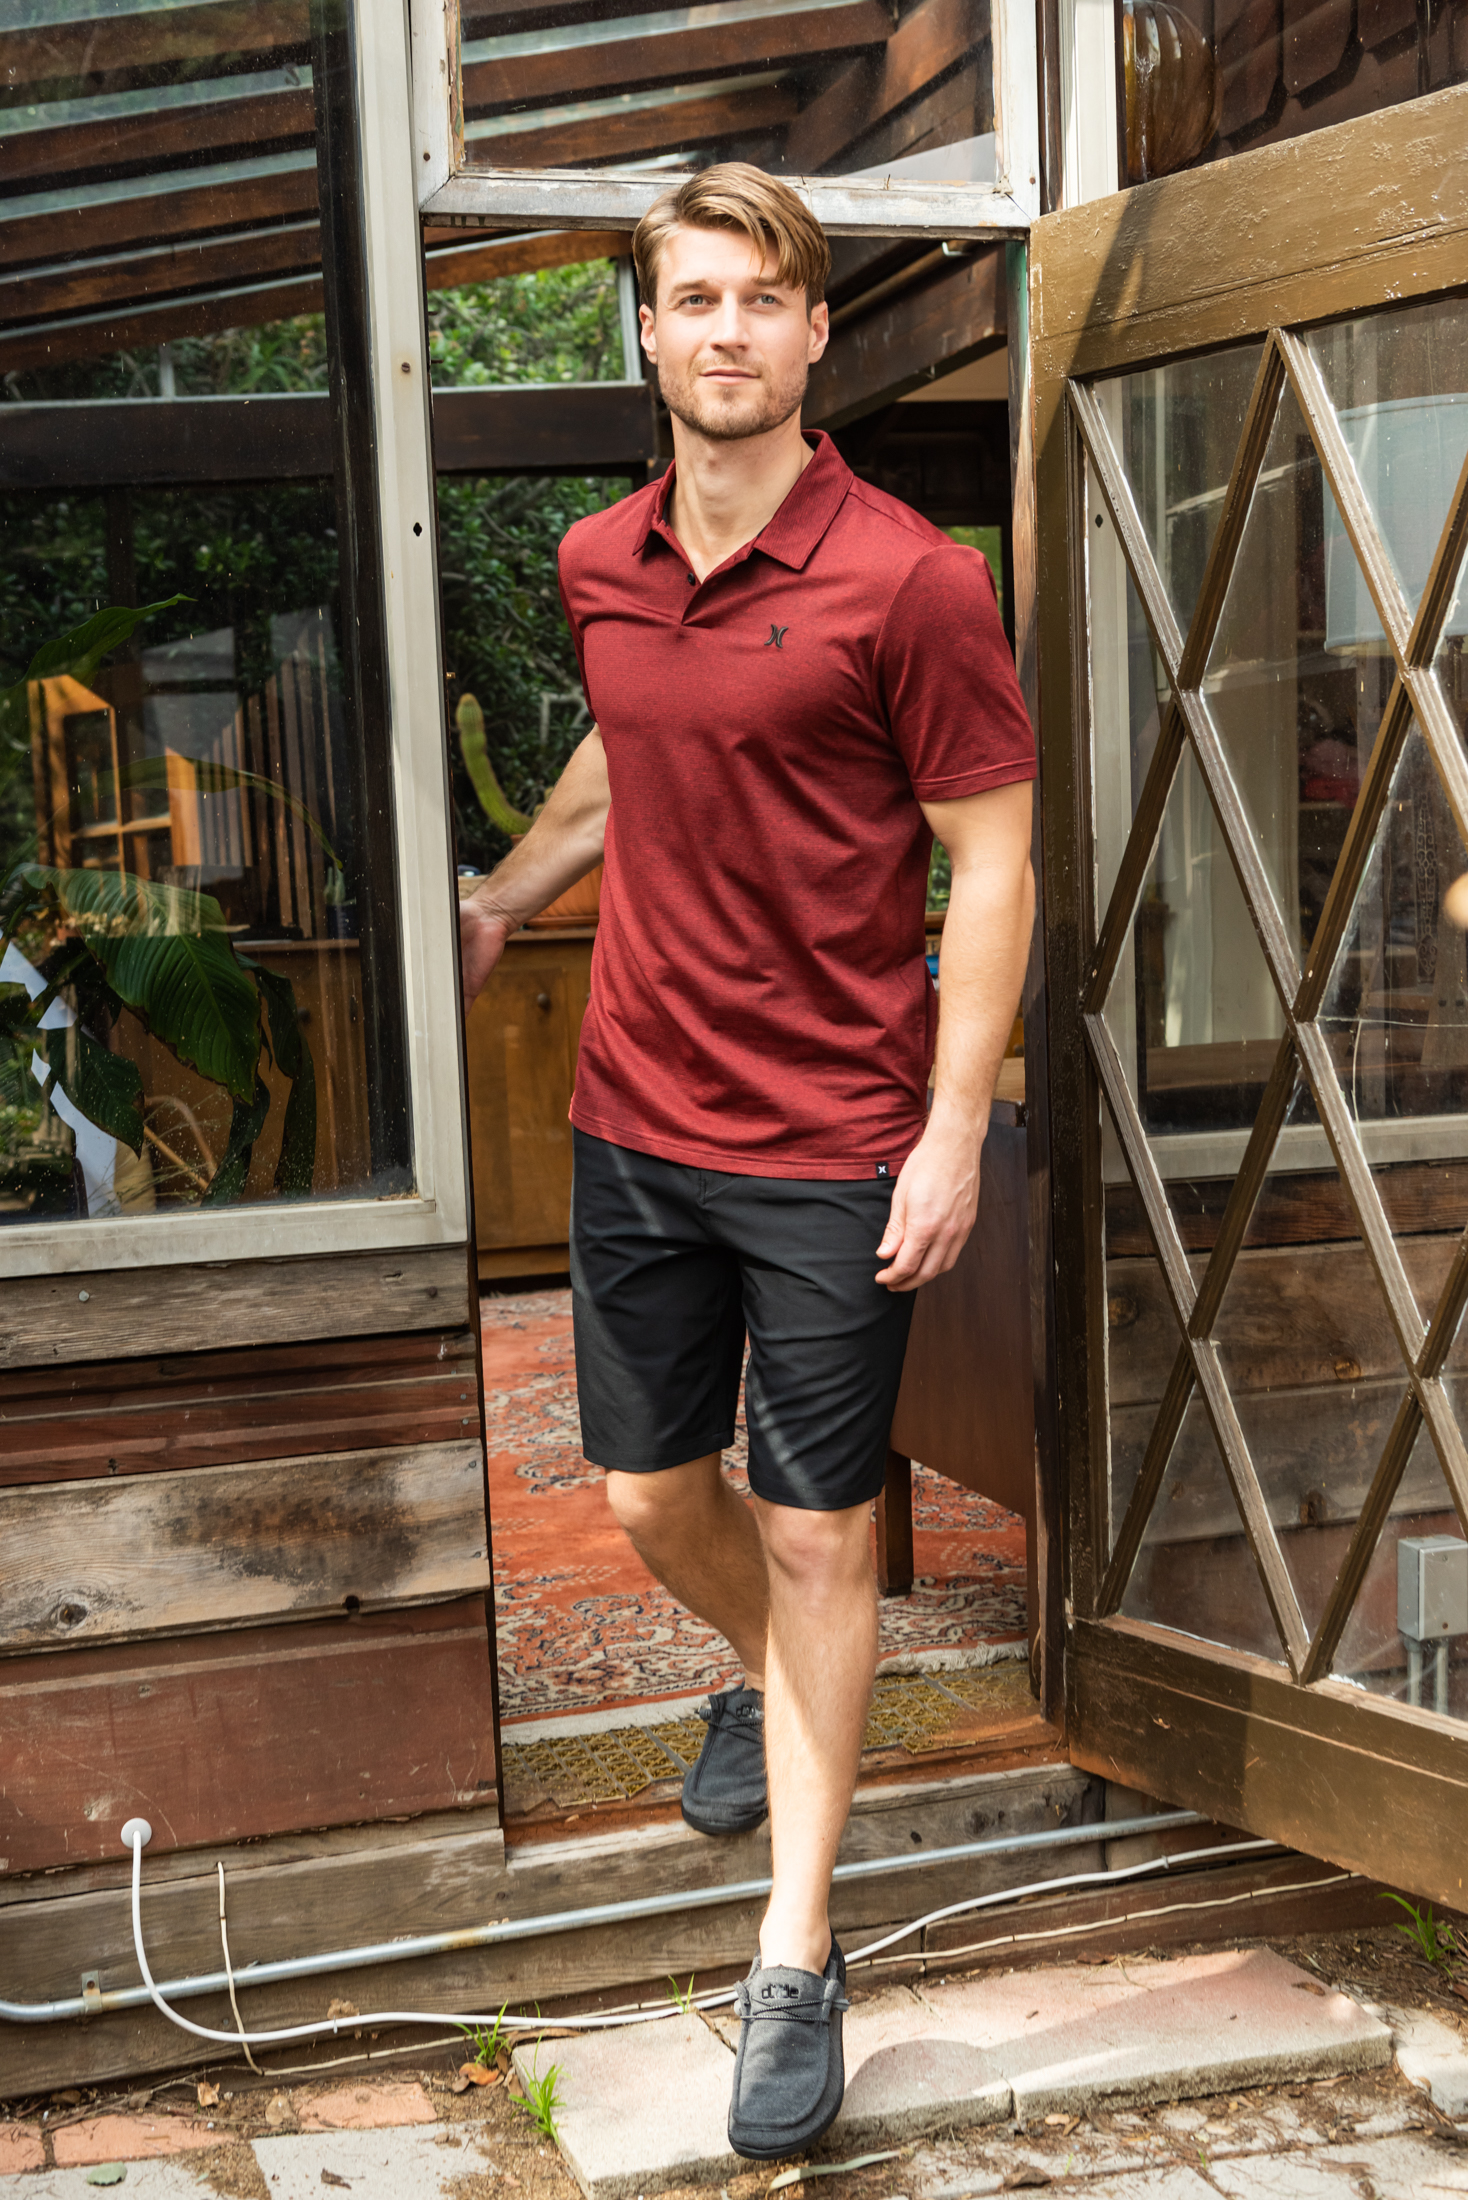 topping our summer essentials for him? Hybrid shorts